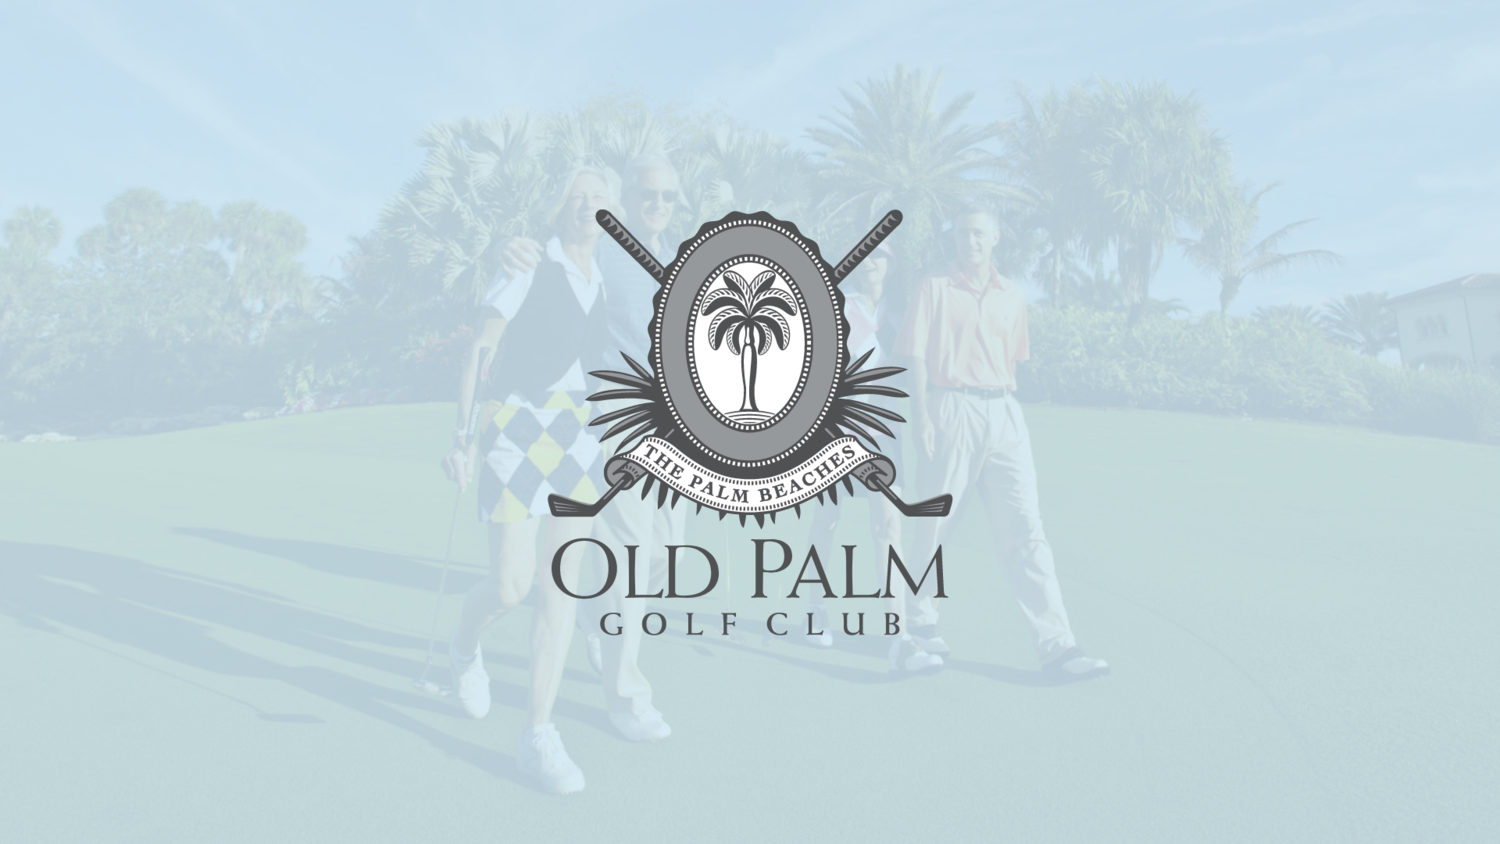 VIEW THE OLD PALM GOLF CLUB CASE STUDY